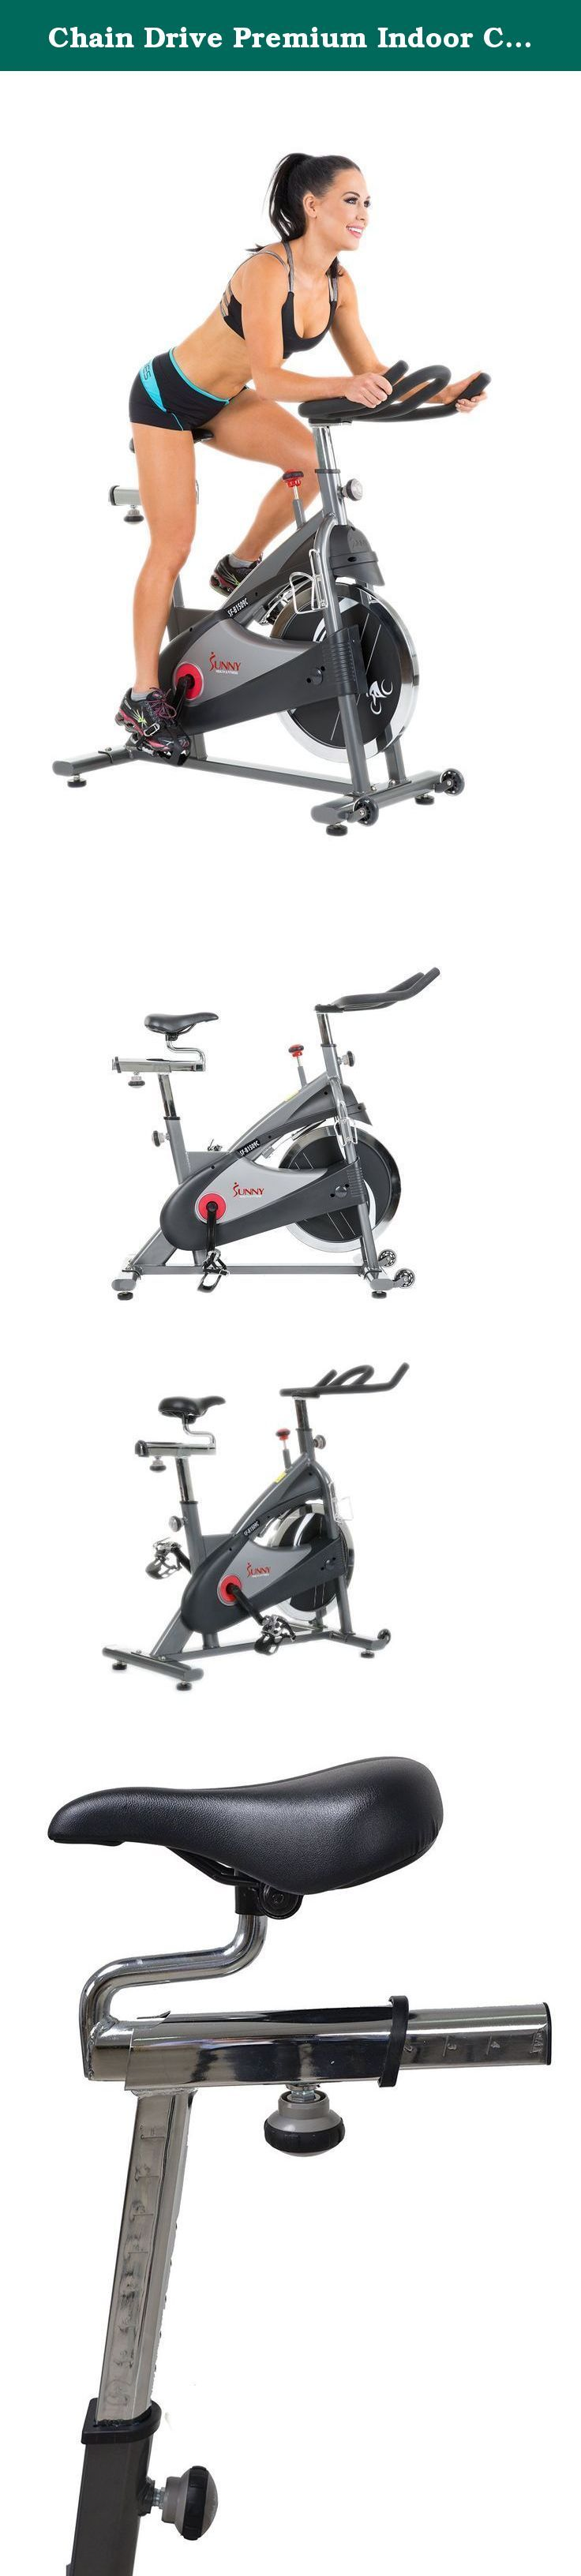 Chain Drive Premium Indoor Cycling Exercise Bike by Sunny Health & Fitness – SF-B1509C. Spin into shape with our new Sunny Health & Fitness chain drive premium indoor cycling bike! with a newly improved smoother and quieter chain drive system, fully adjustable seat and adjustable handlebars and resistance, the Sunny Health & Fitness chain drive premium indoor cycling bike is designed for performance, comfort and durability while also providing the challenging feel of outdoor cycling. The...